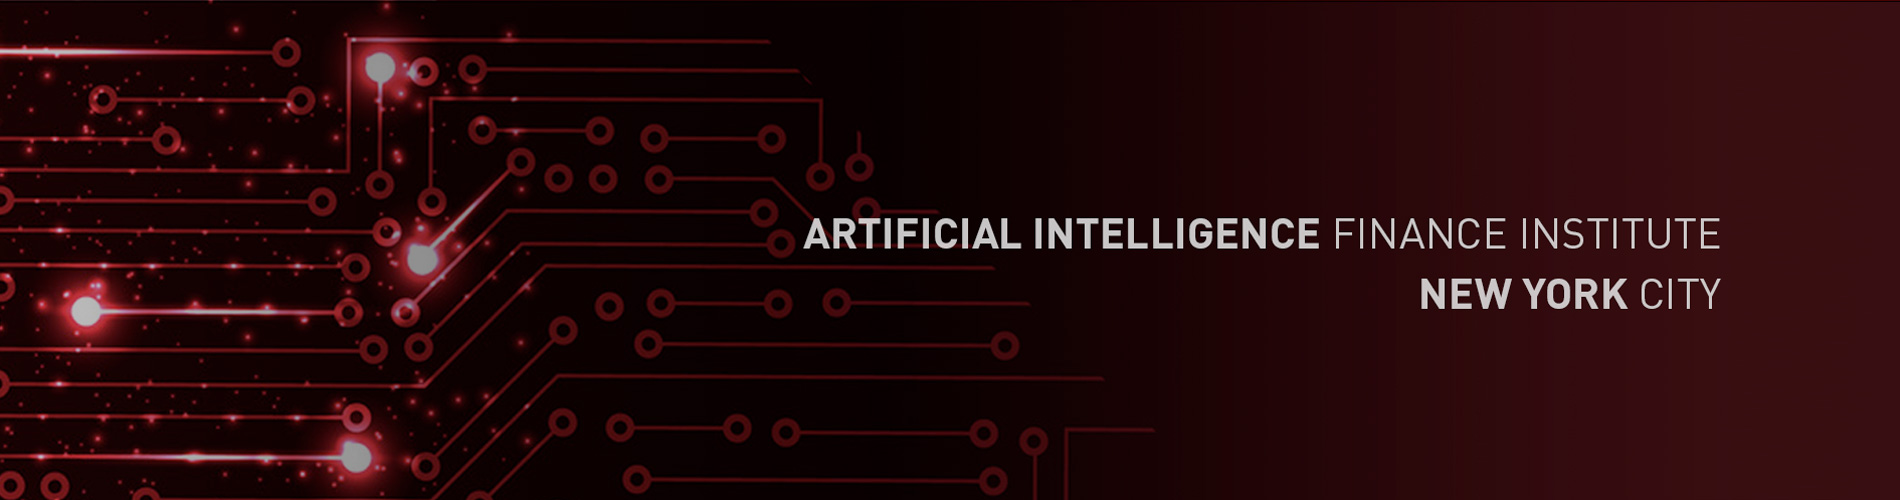 Artificial Intelligence Finance Institute - New York City